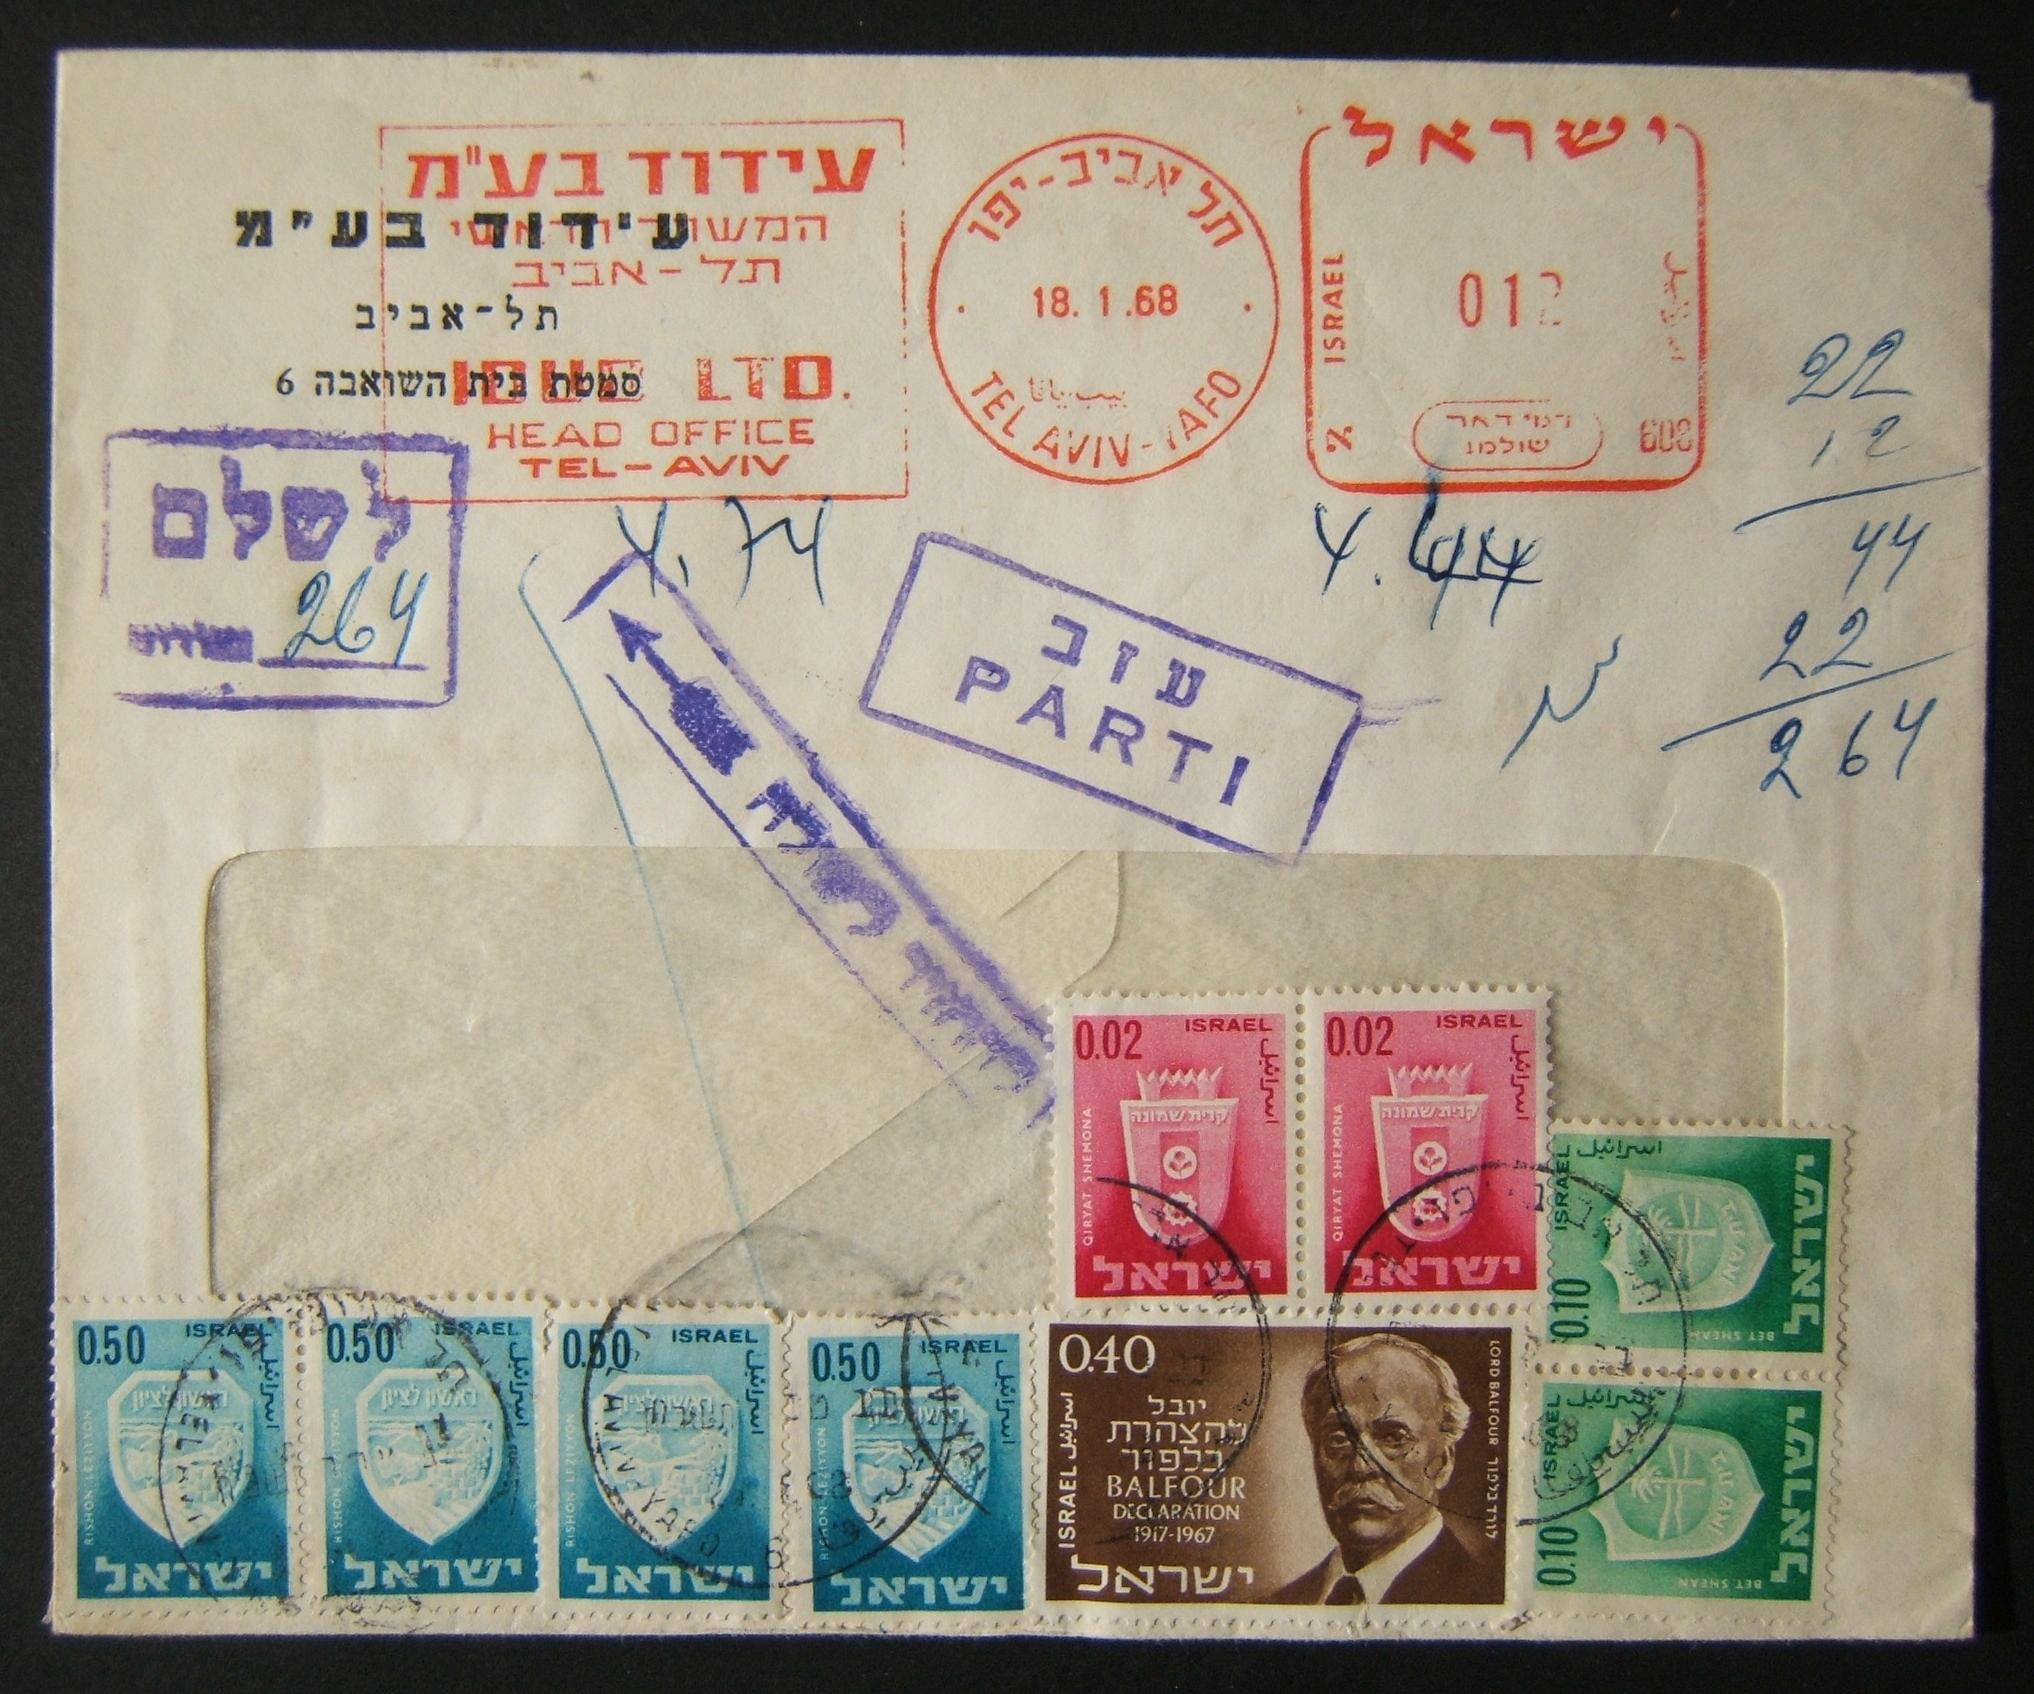 1968 domestic 'top of the pile' taxed franking: 18-1-68 pm comm. cv ex TLV to HERZLIYA franked by meter at DO-12 period 12 Ag rate; b/s 21-1-68 arrival but returned to sender as ad